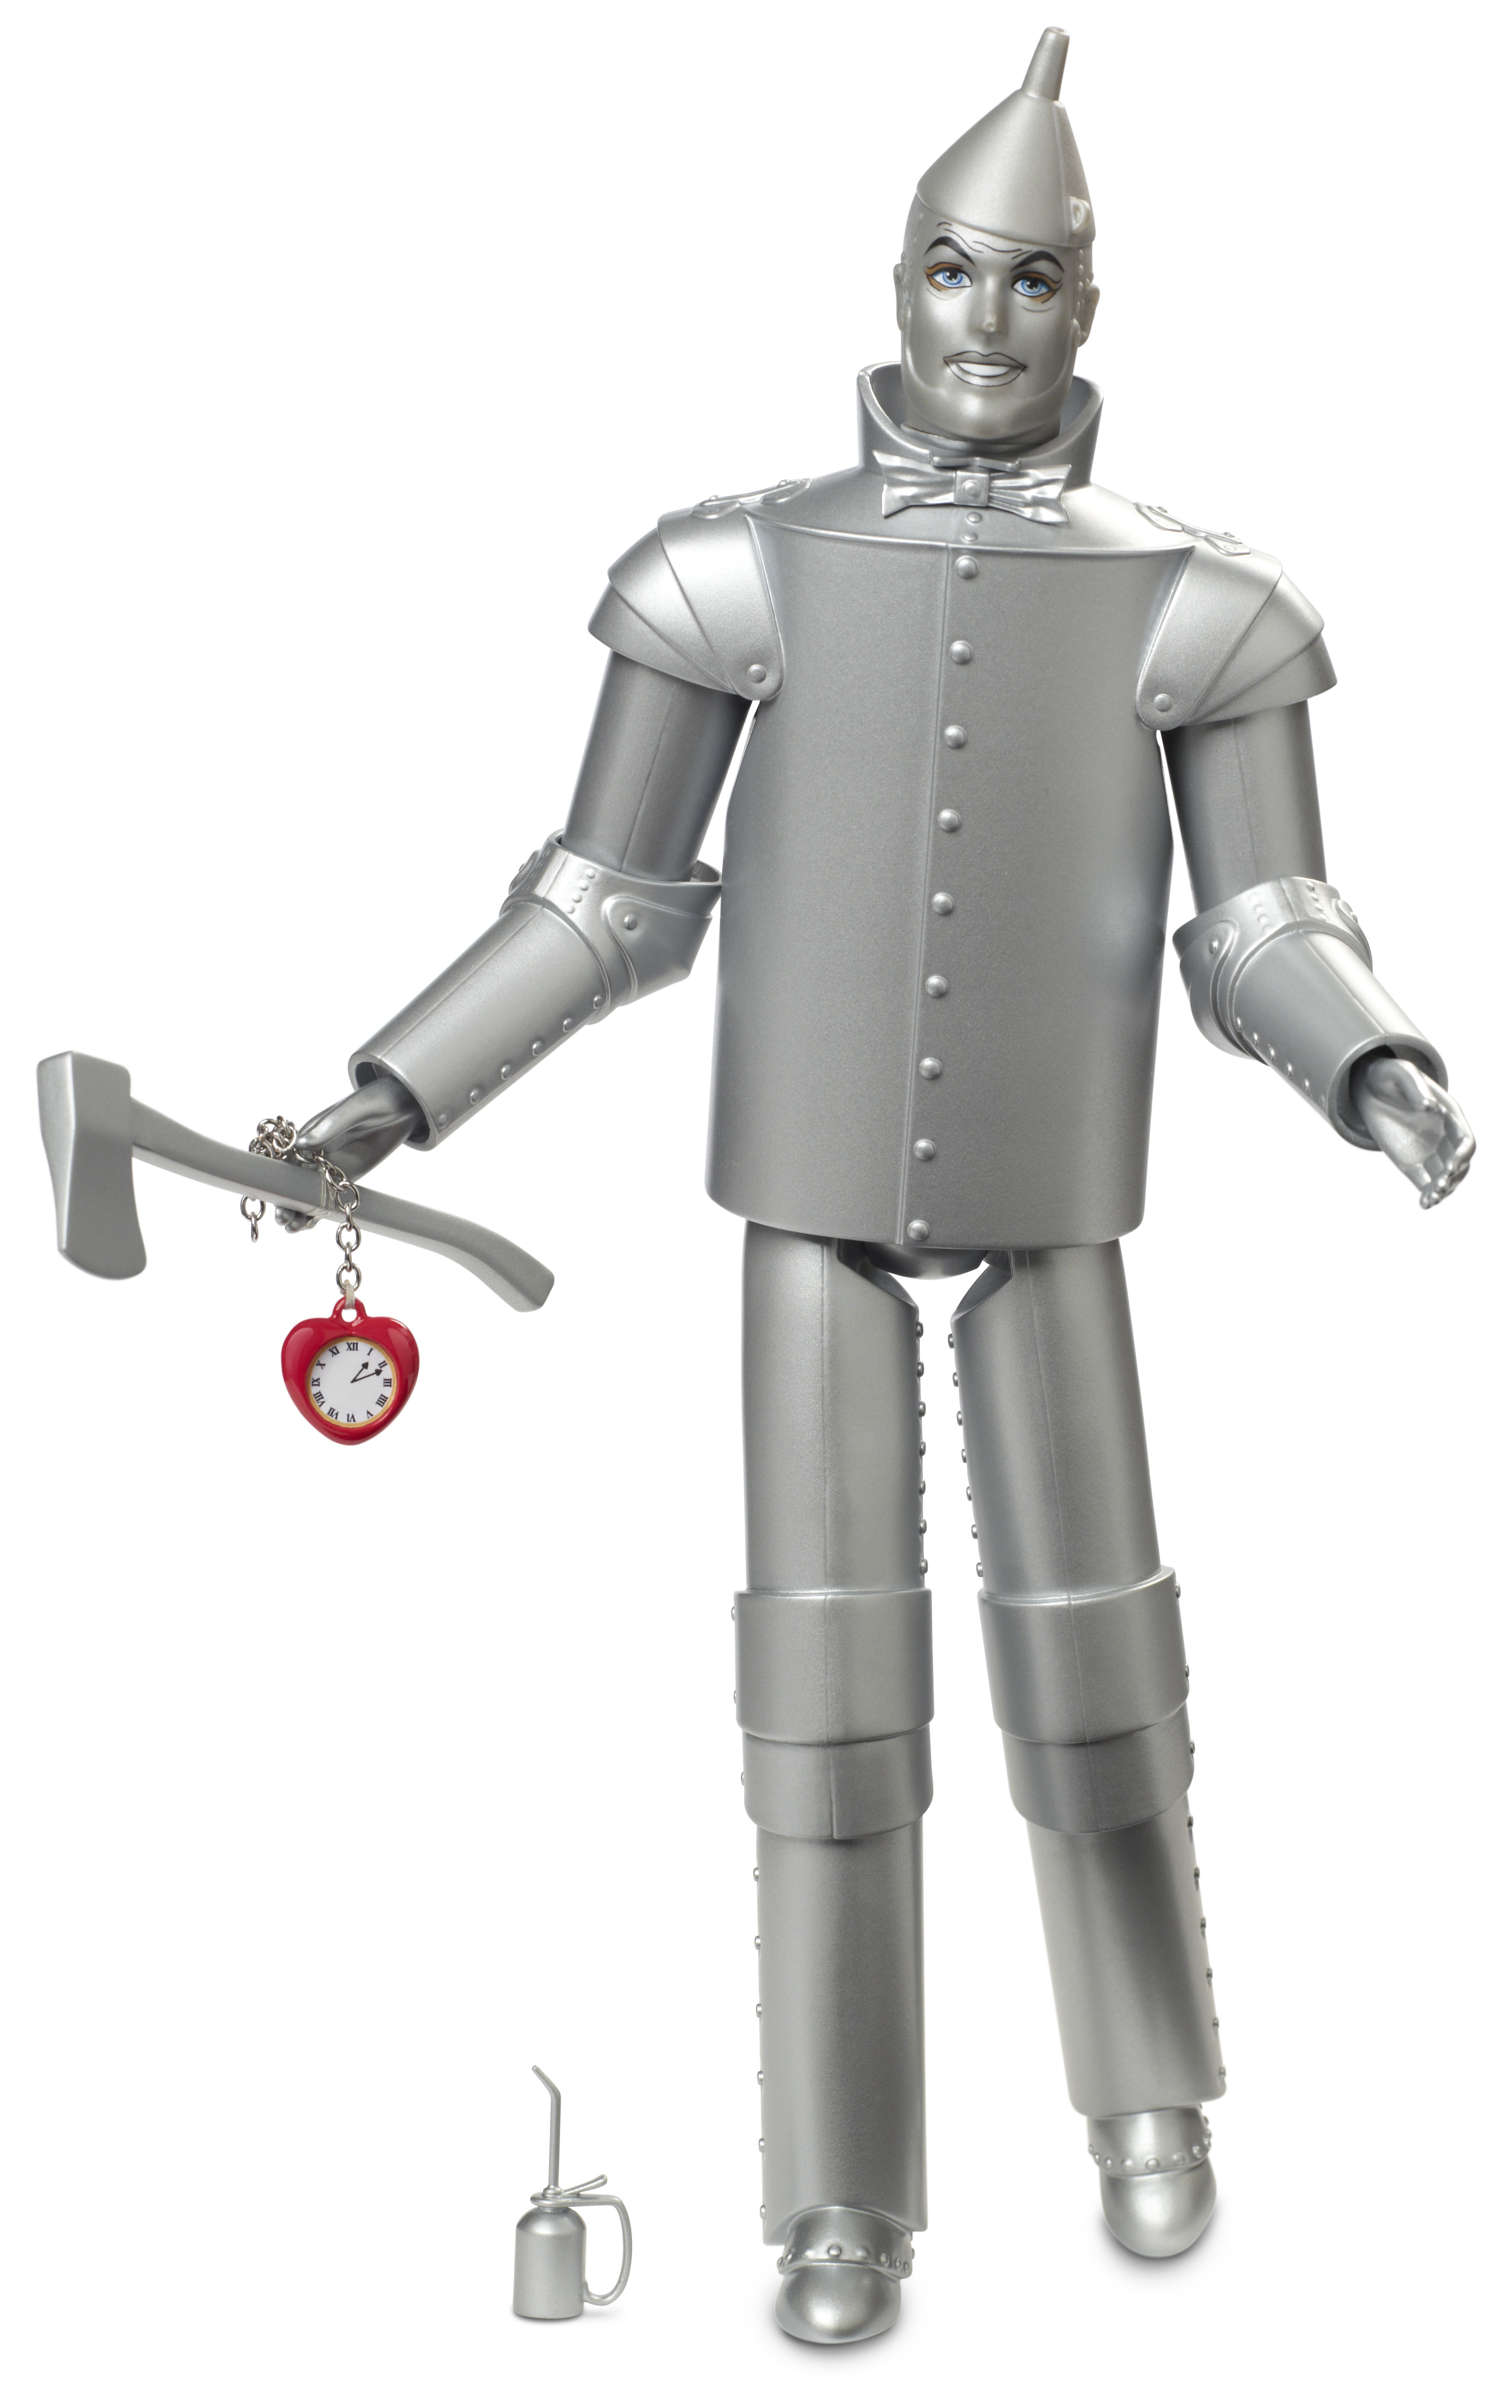 oz and the tinman Oh, oz never did give nothing to the tin man that he didn't, didn't already have and cause never was the reason for the evening or the tropic of sir galahad.